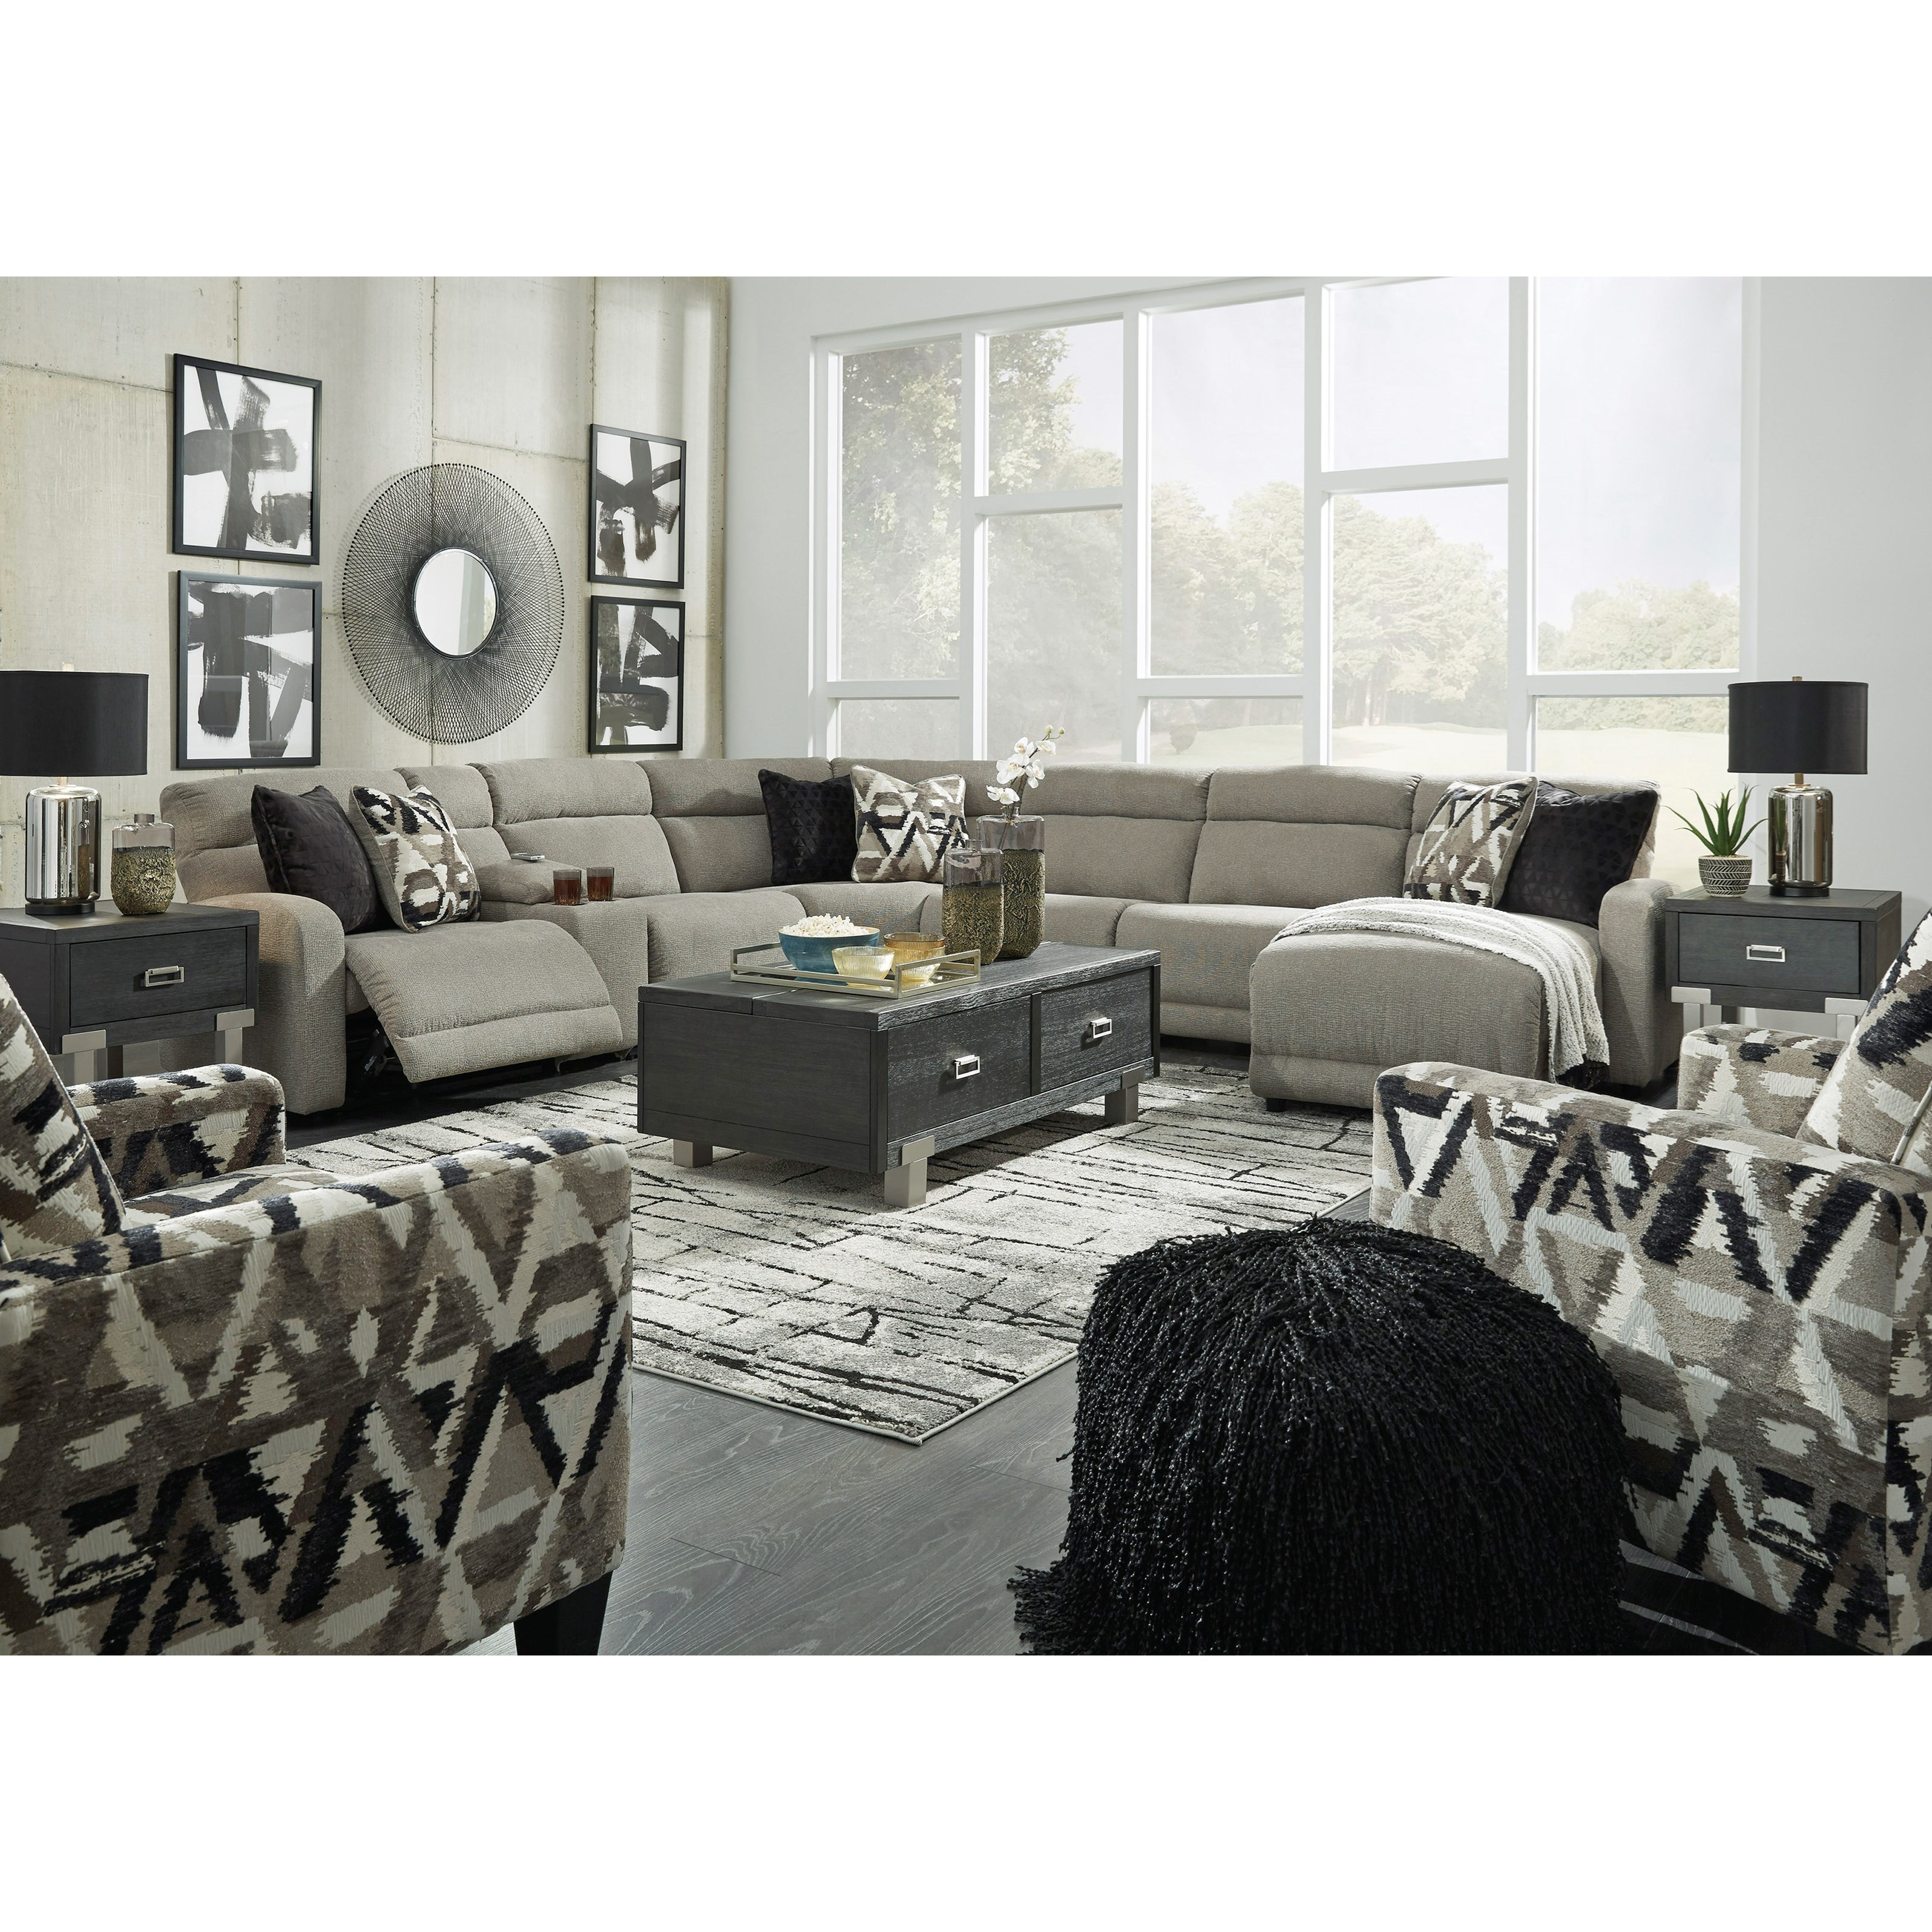 Colleyville Power Reclining Living Room Group by Signature Design by Ashley at Standard Furniture